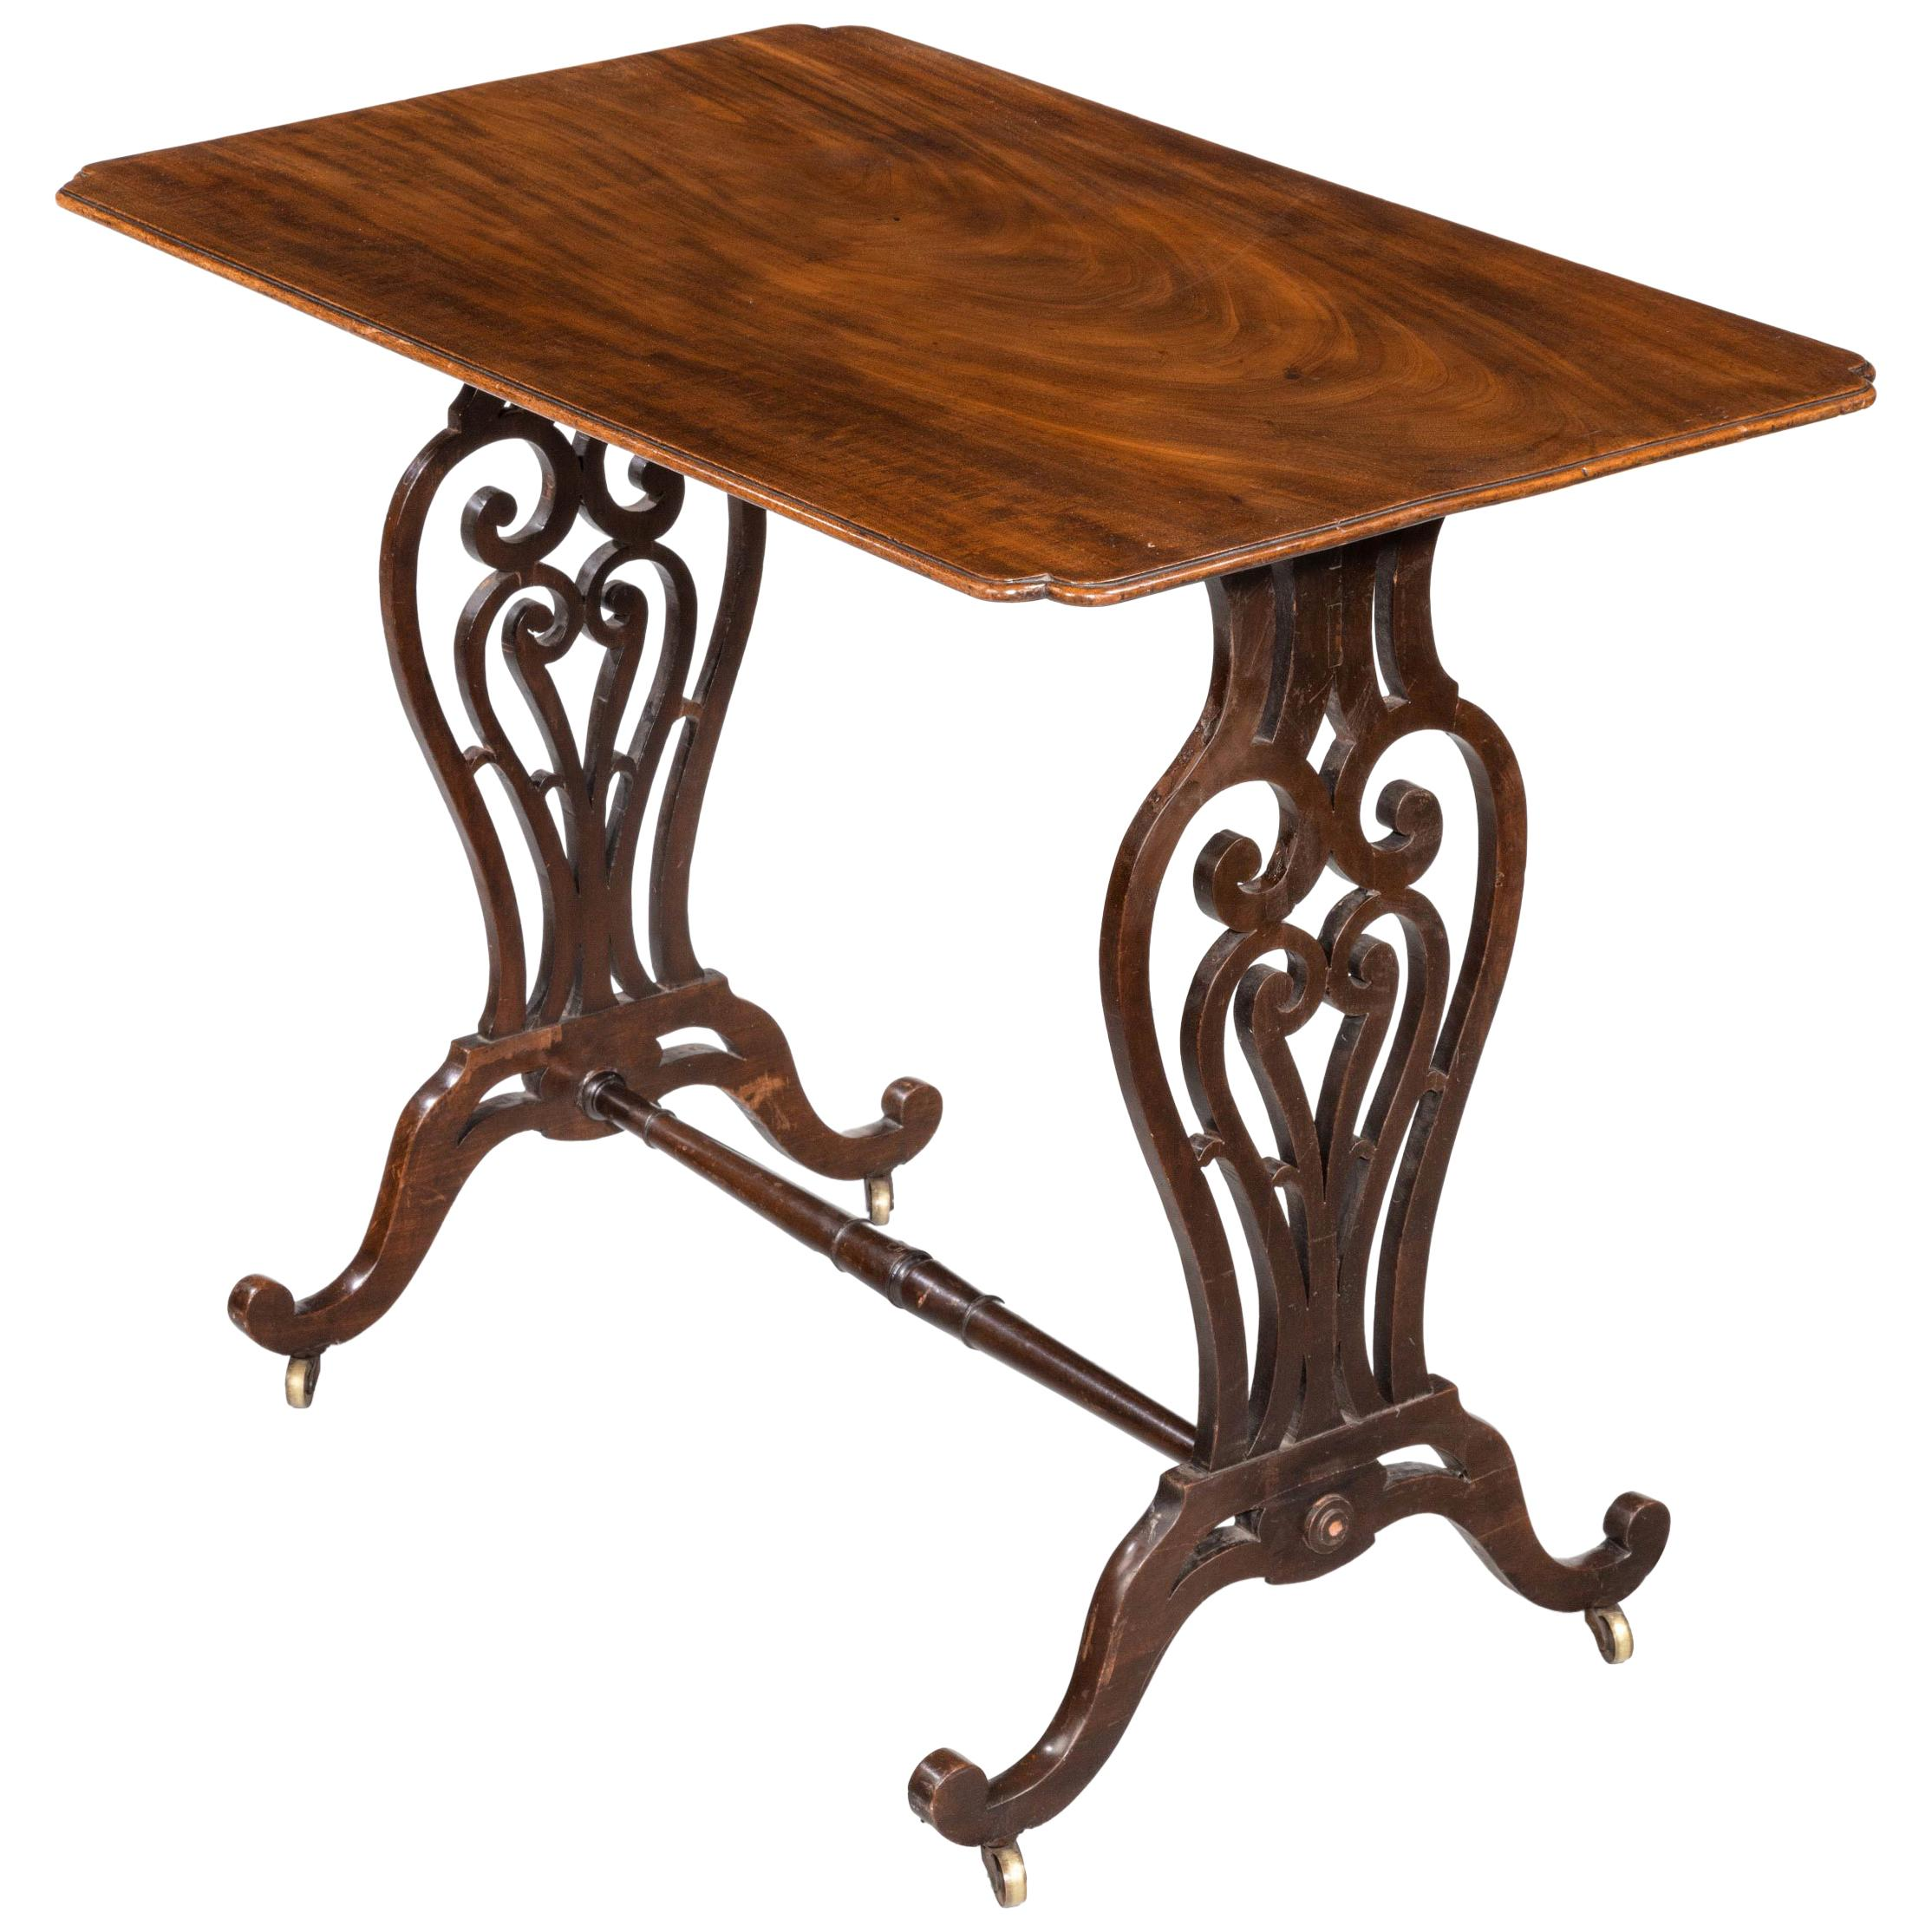 Late Regency Period Mahogany Centre Standing Table